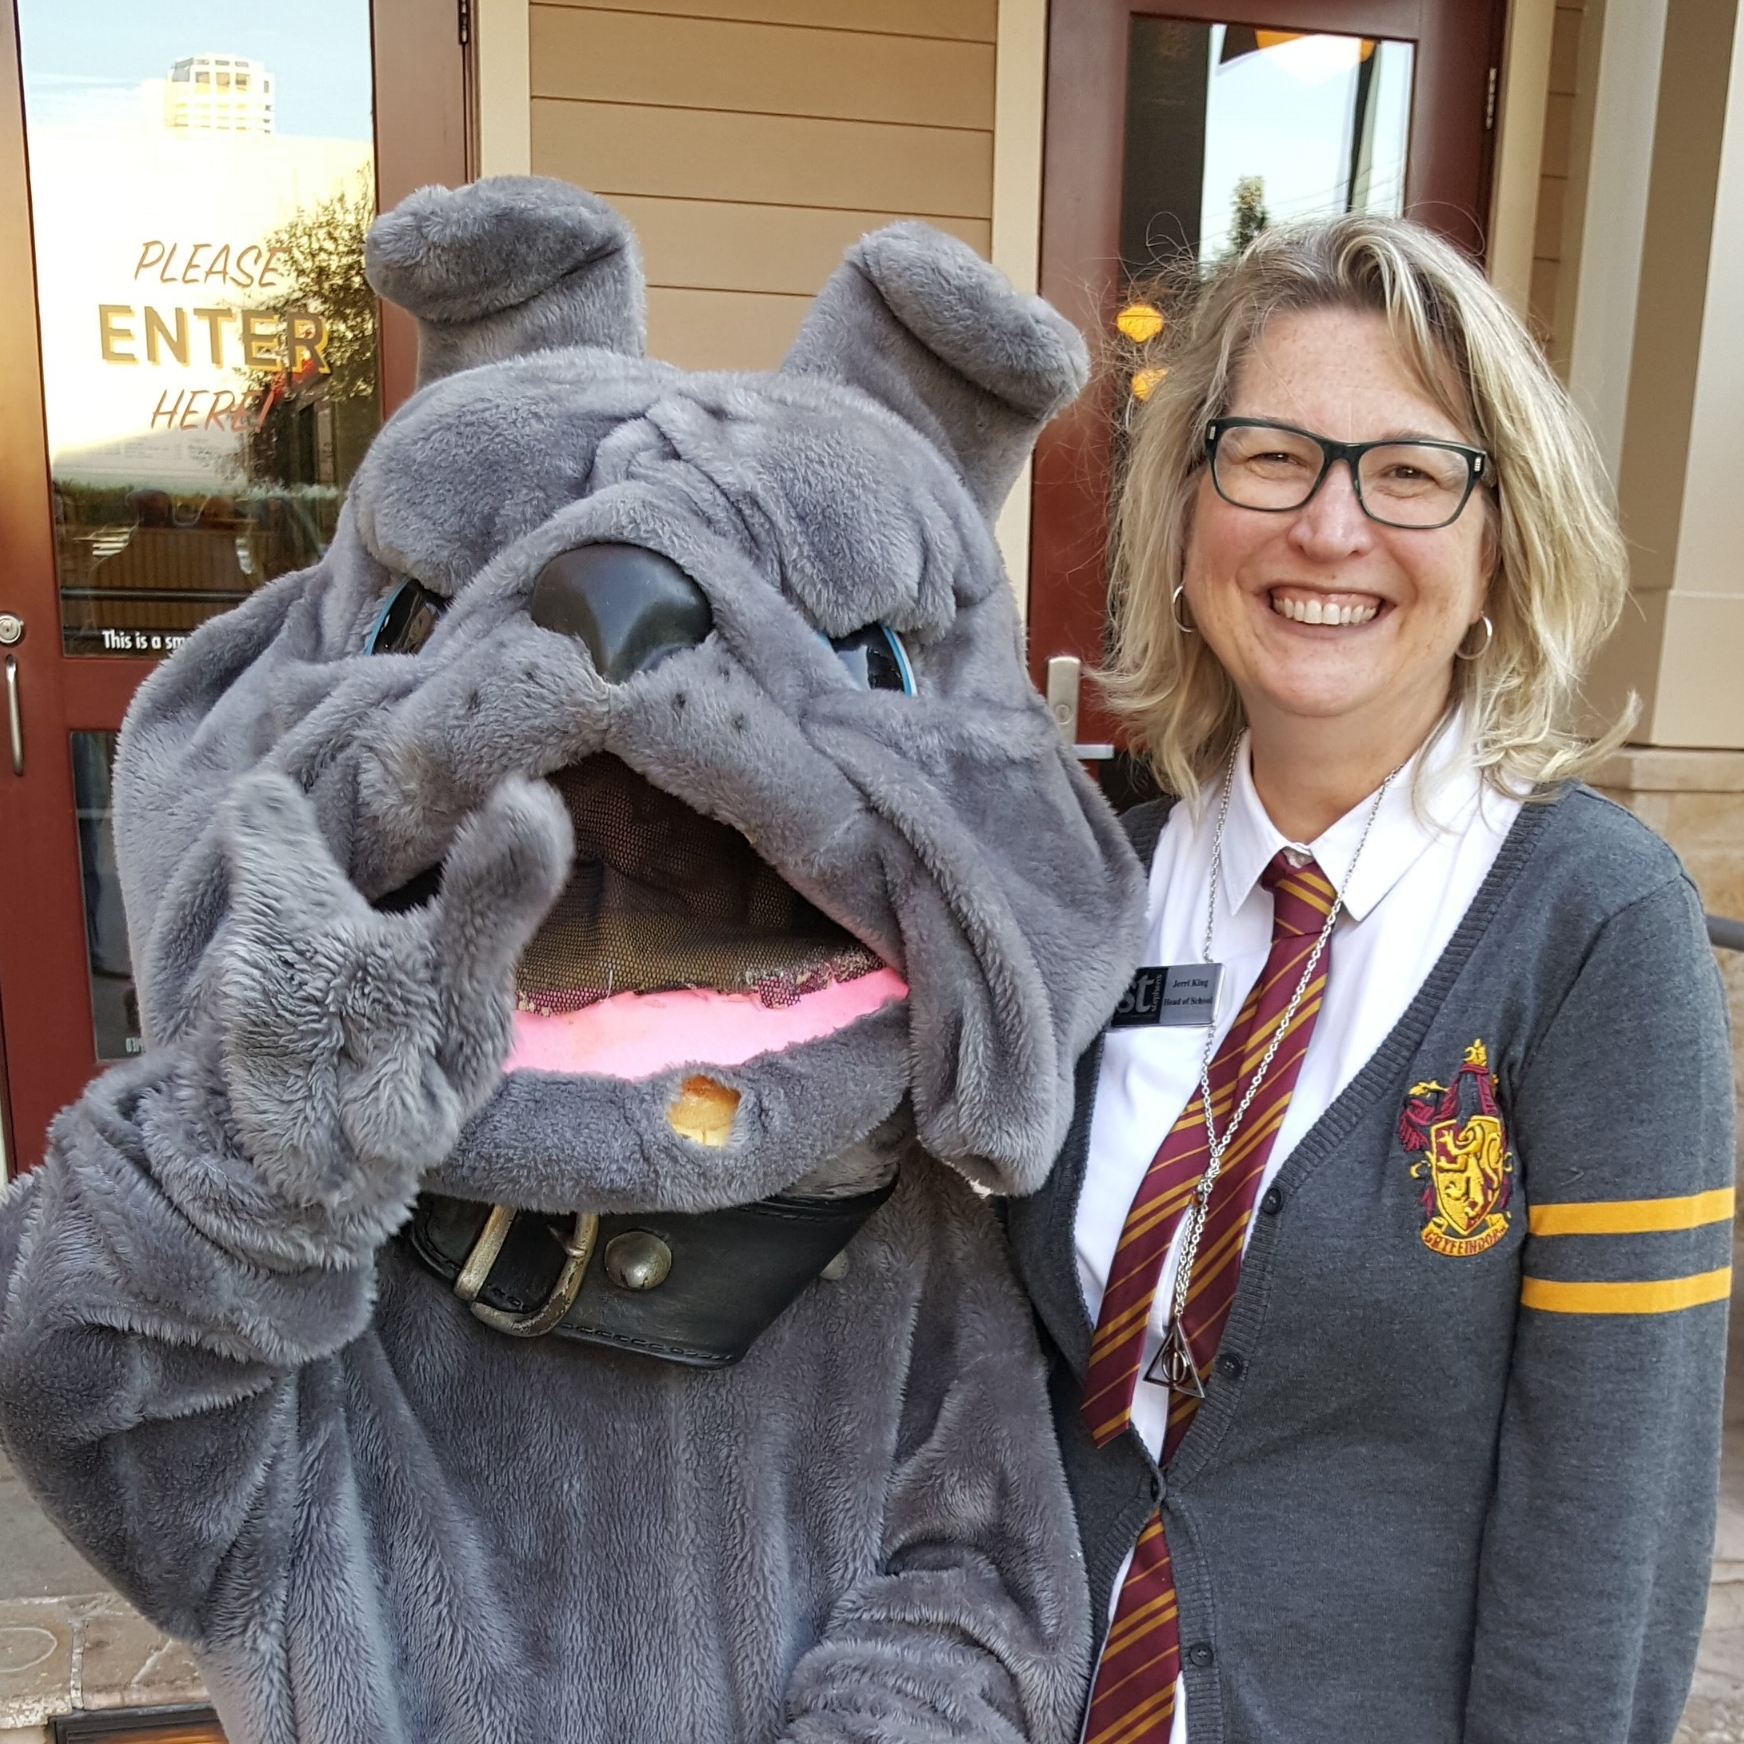 Jerri King, Head of School  - Ms. Jerri will be available to meet you as you tour and visit campus, personally sharing many of the St. Stephen's stories.